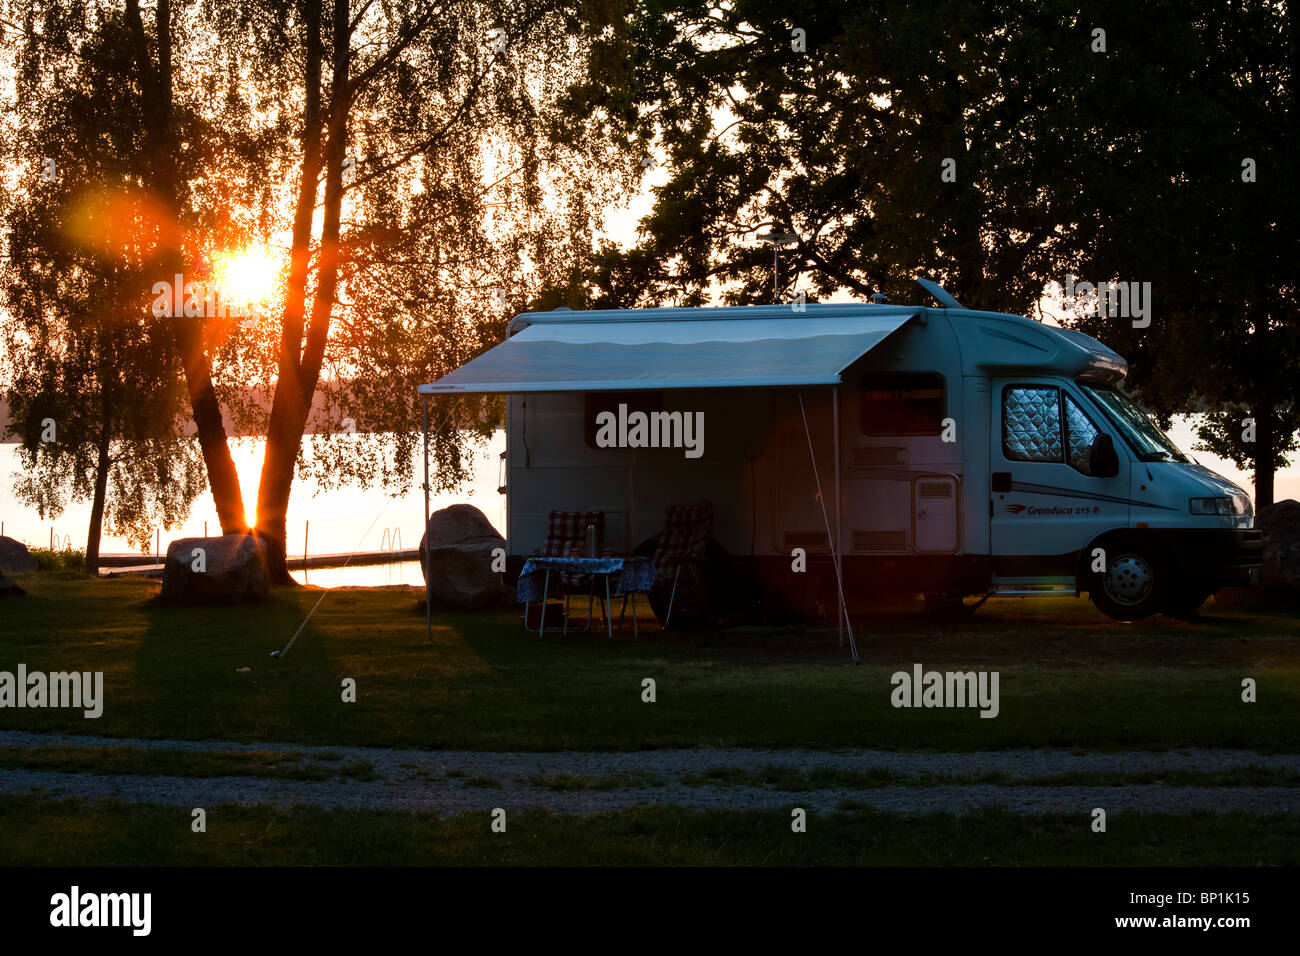 A camper trailer at a lake in sunset. - Stock Image